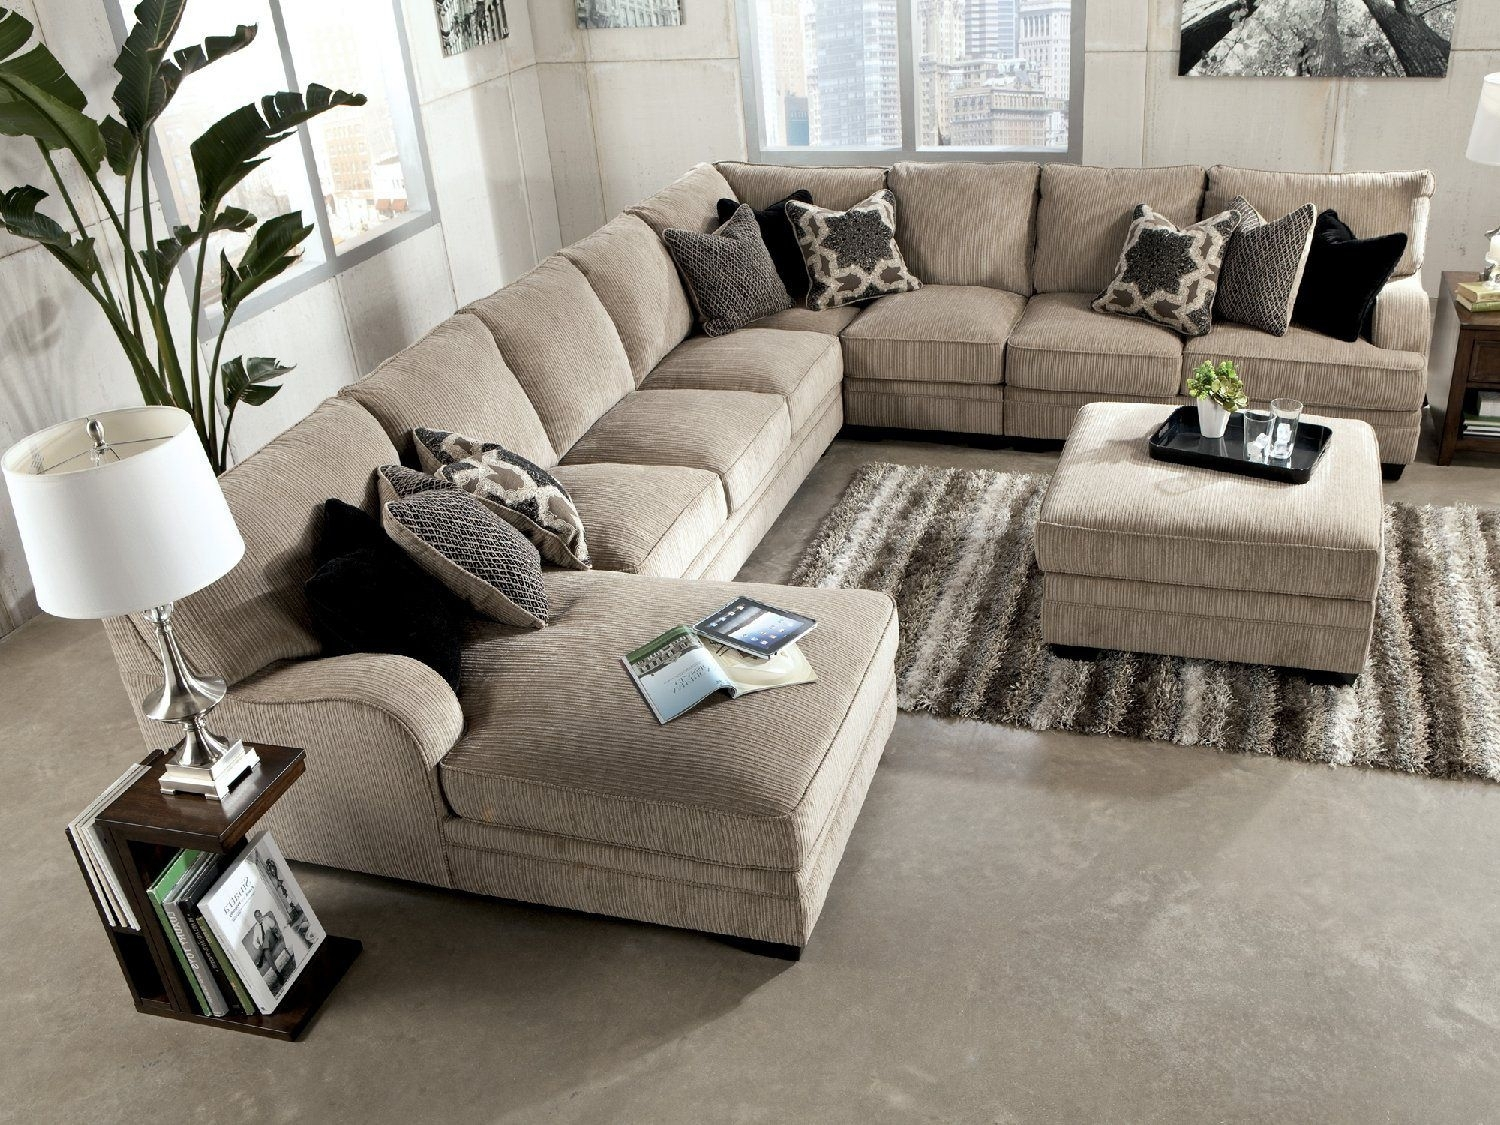 Tisha 6 Piece Sectional Package Including Storage Ottoman | Hom Inside Minneapolis Sectional Sofas (View 3 of 10)